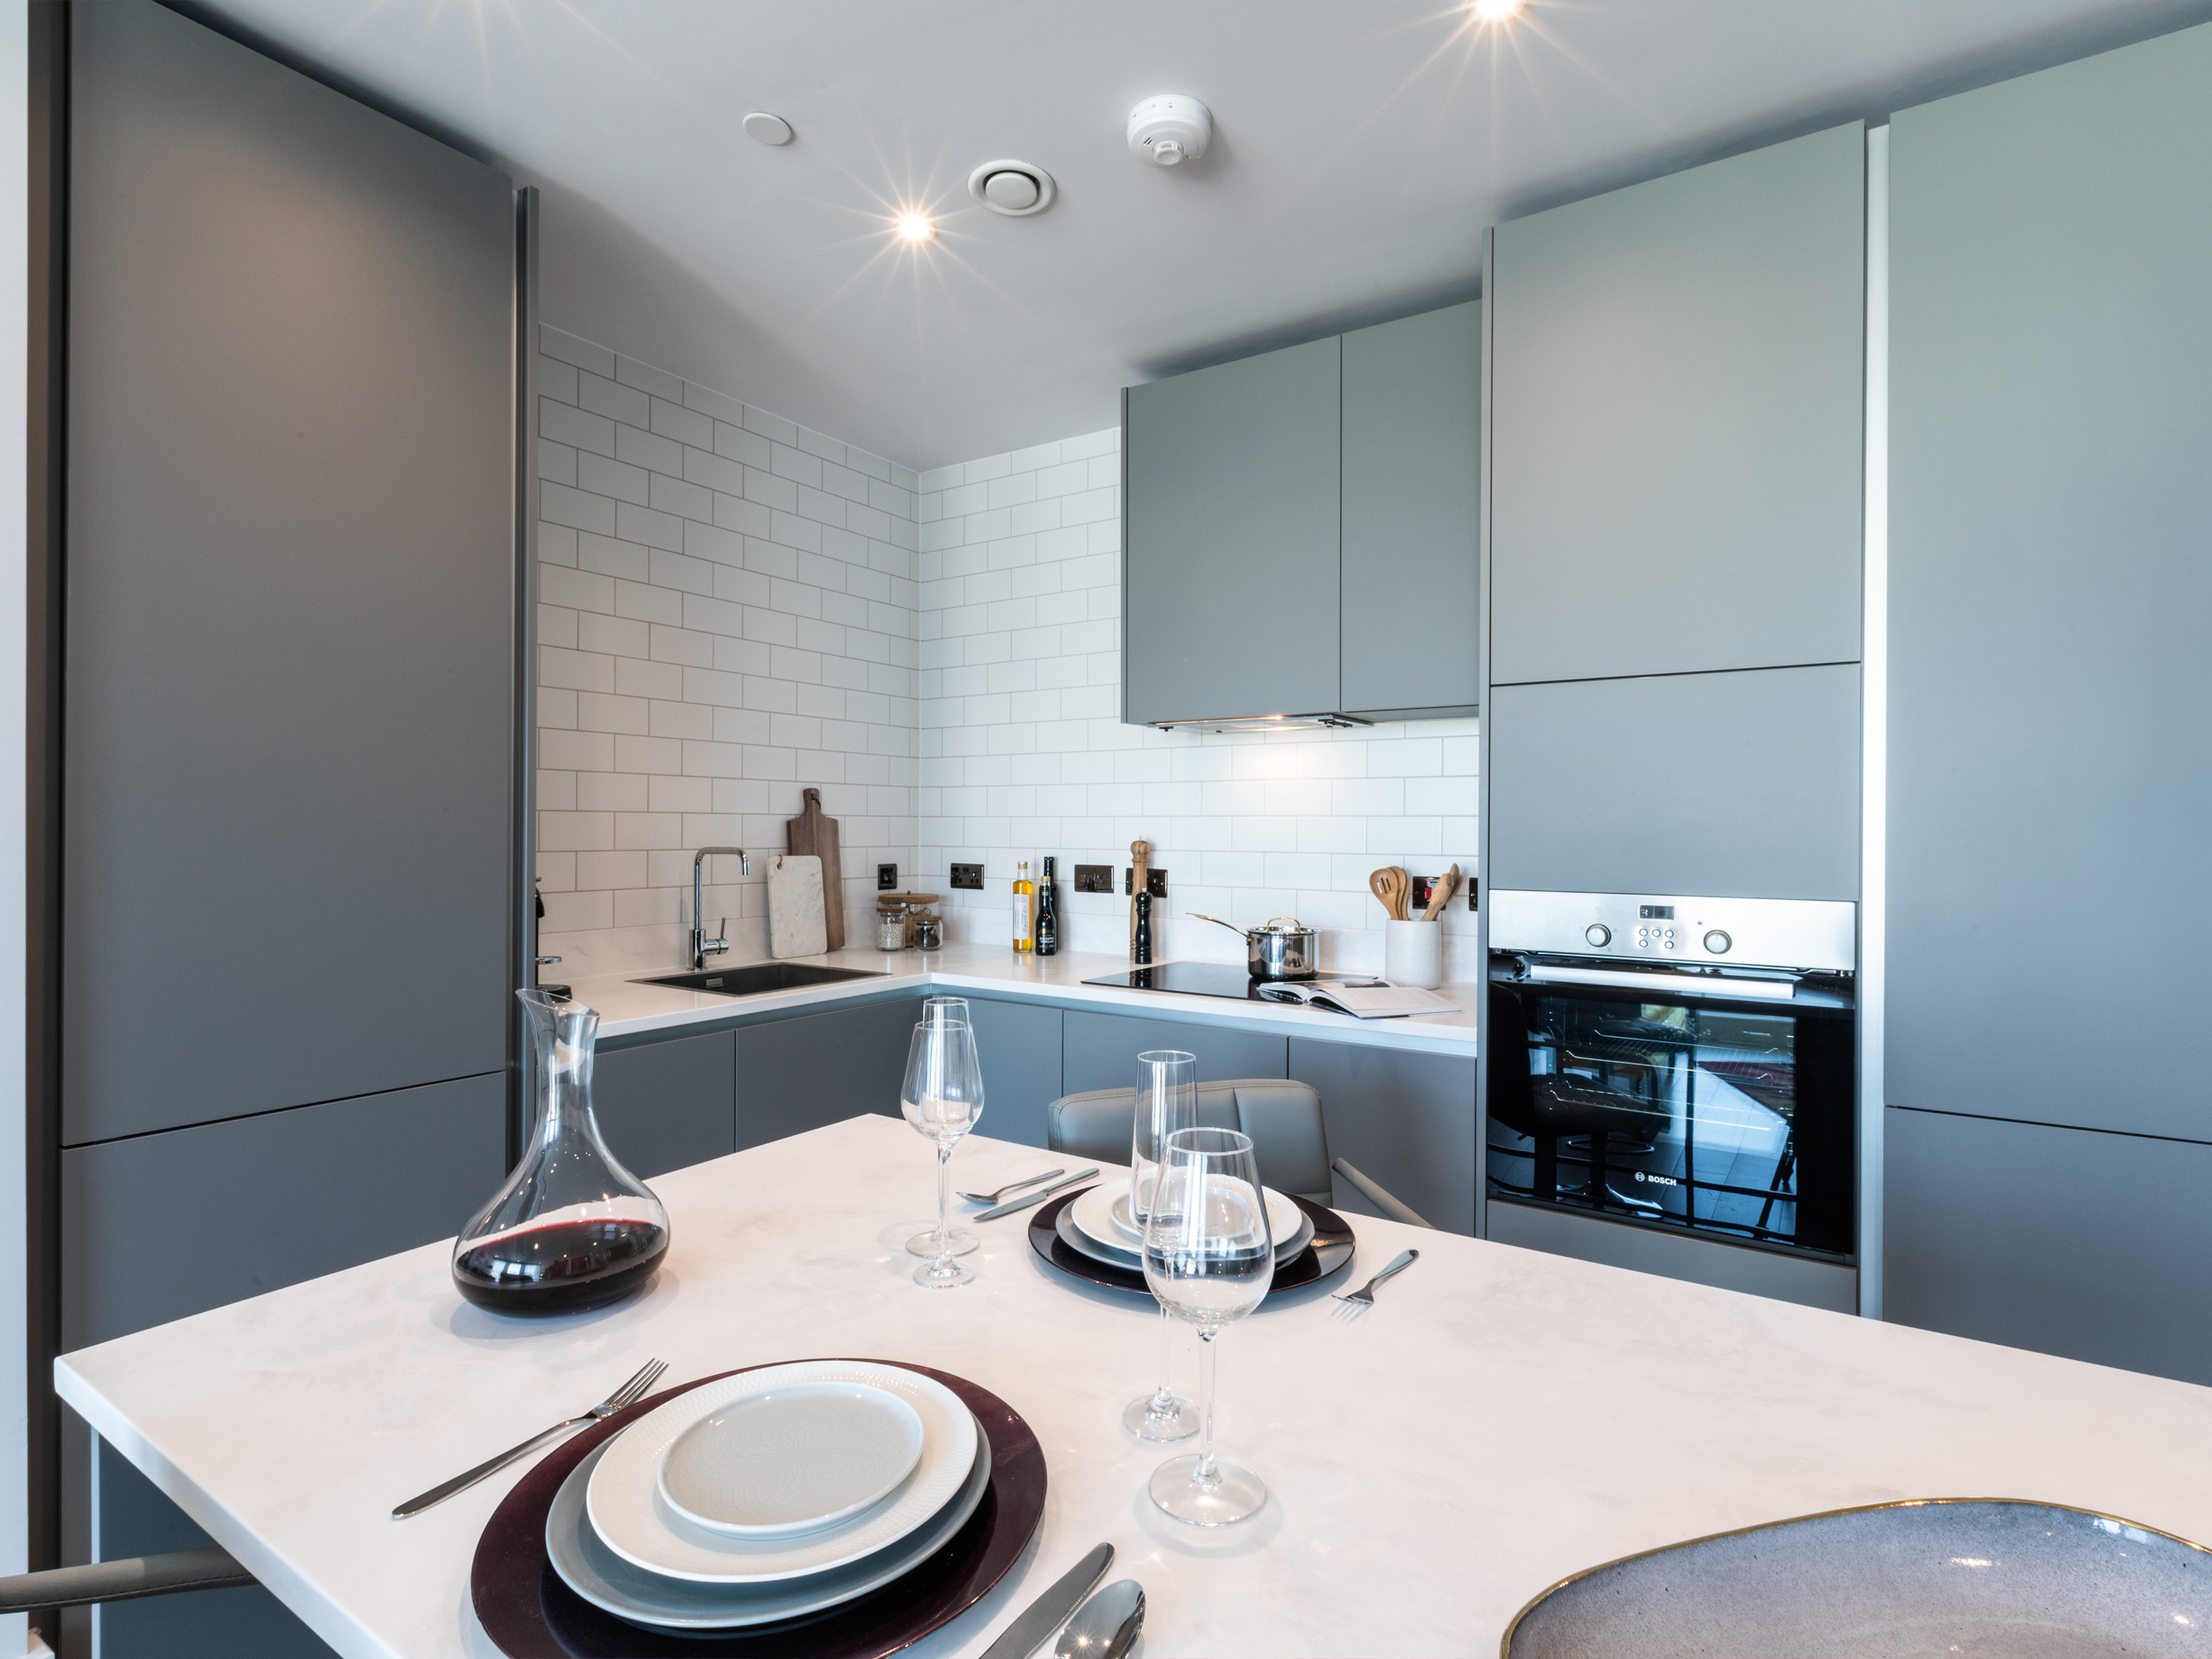 The kitchen area of a luxury two bedroom apartment at Leon House, Croydon